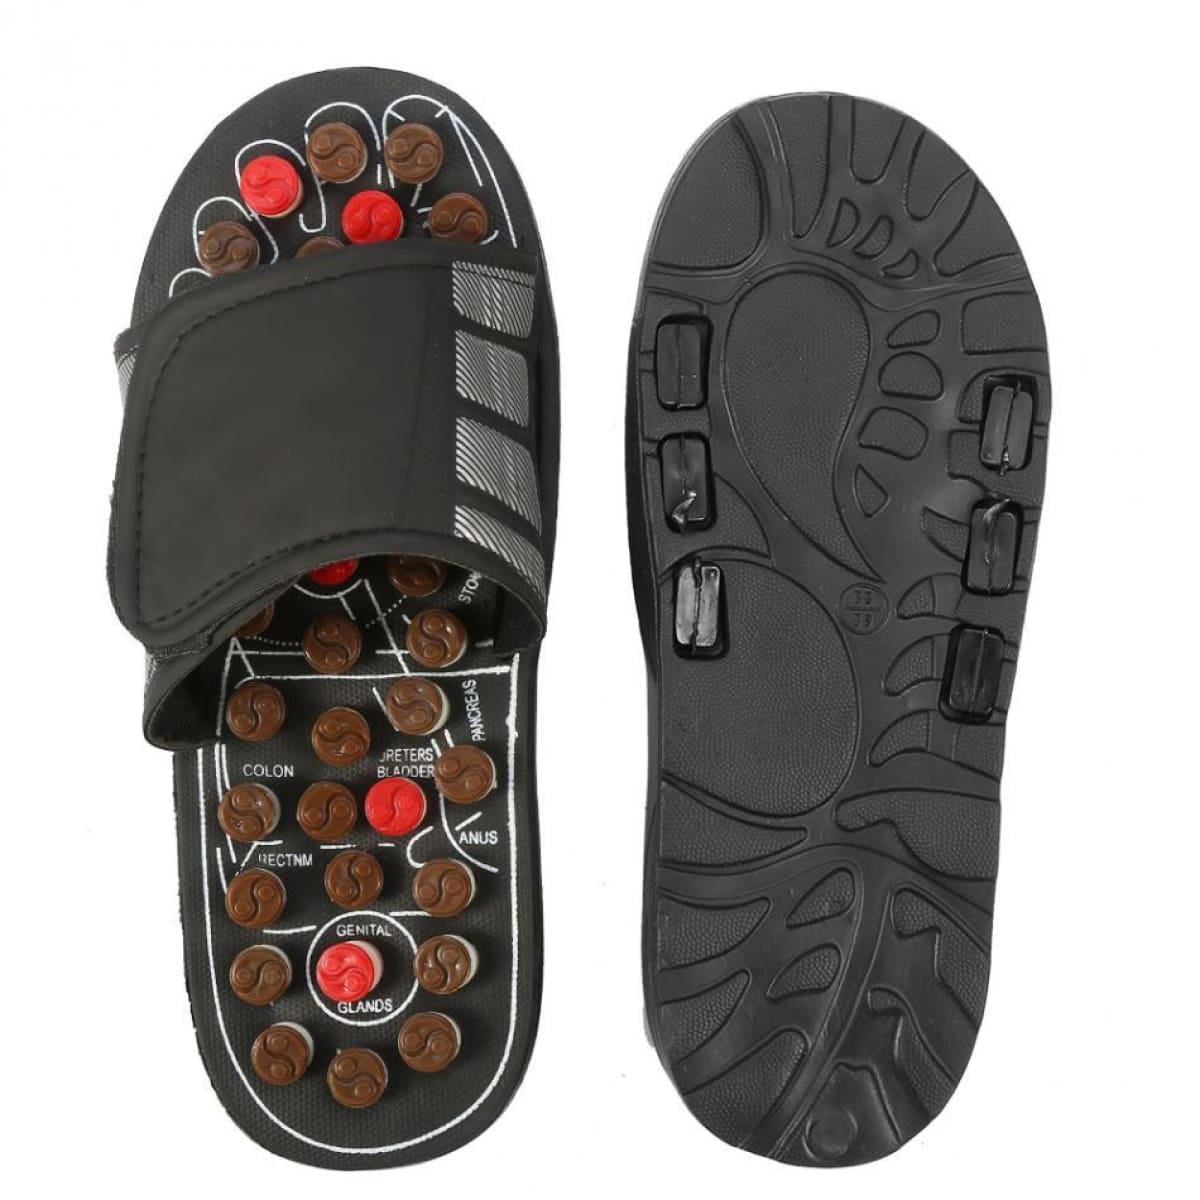 Acupressure Slippers | Therapeutic Reflexology Foot ...